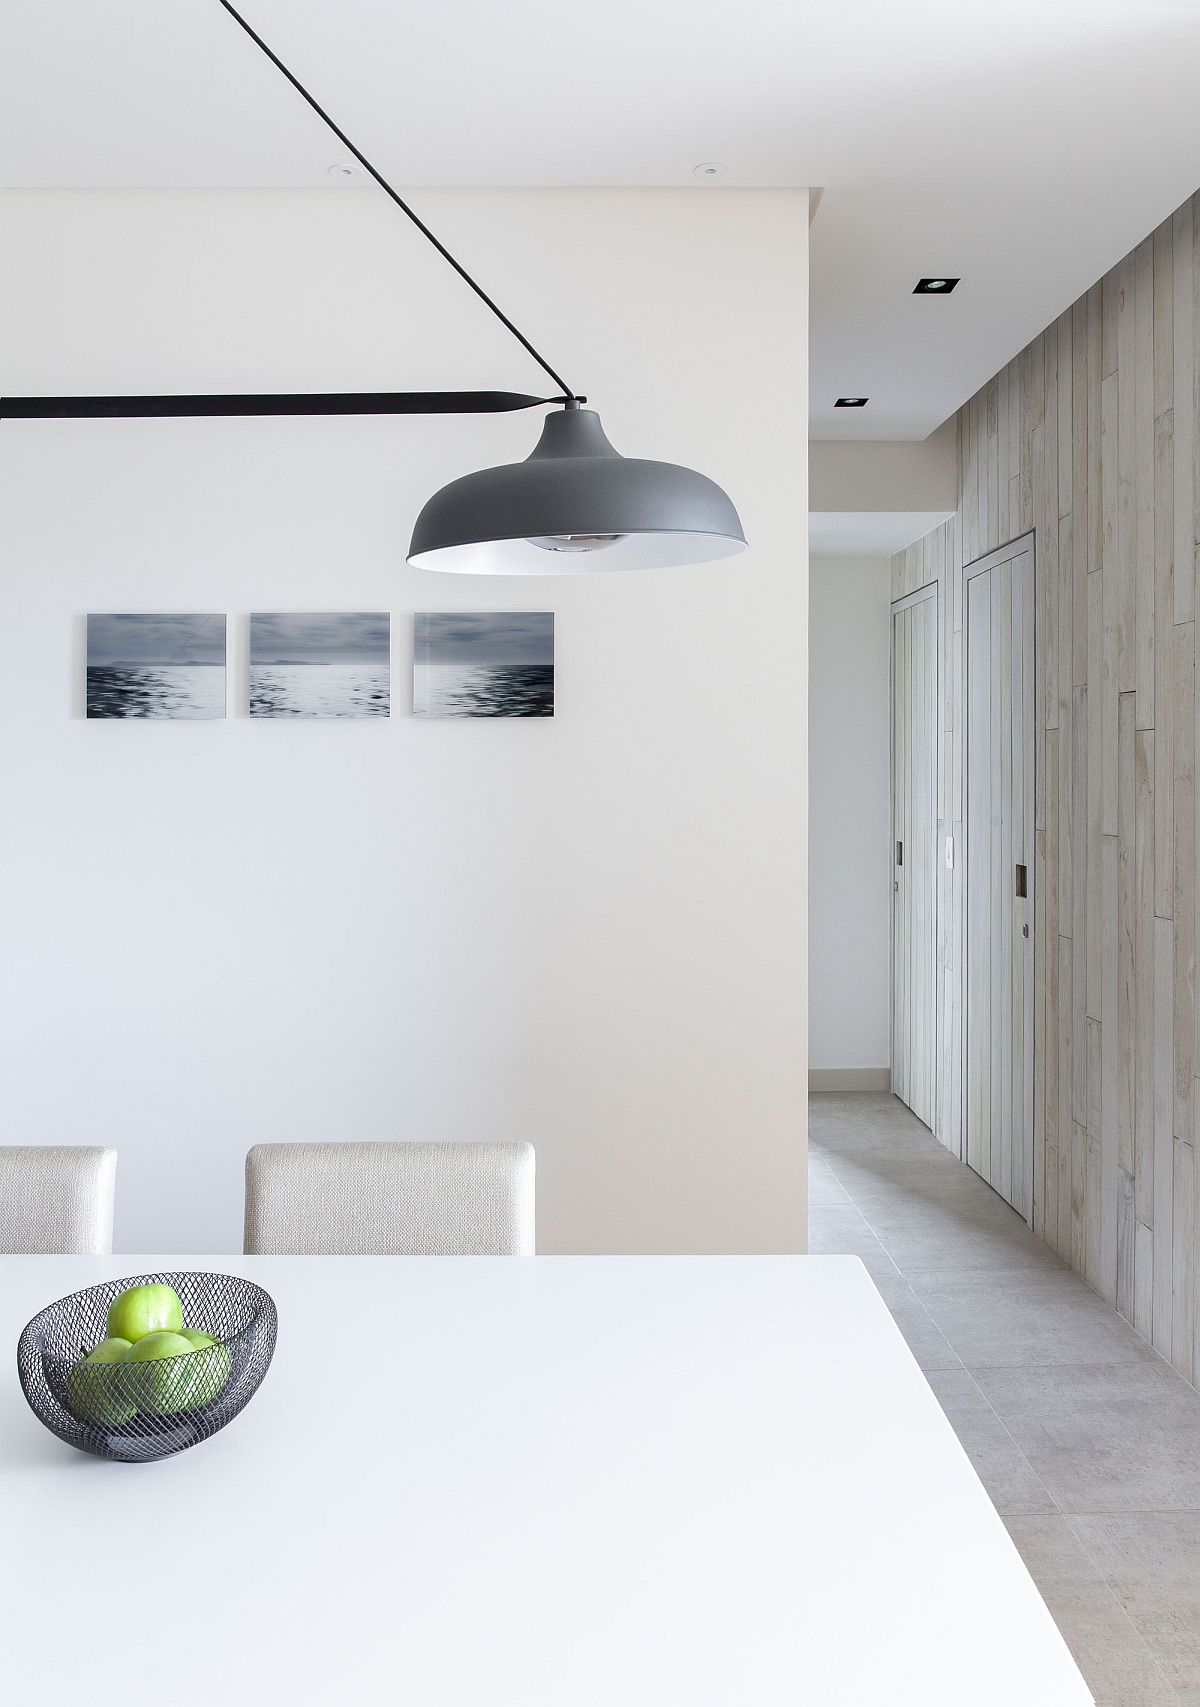 Minimal and modern dining room in white with gray pendant lighting